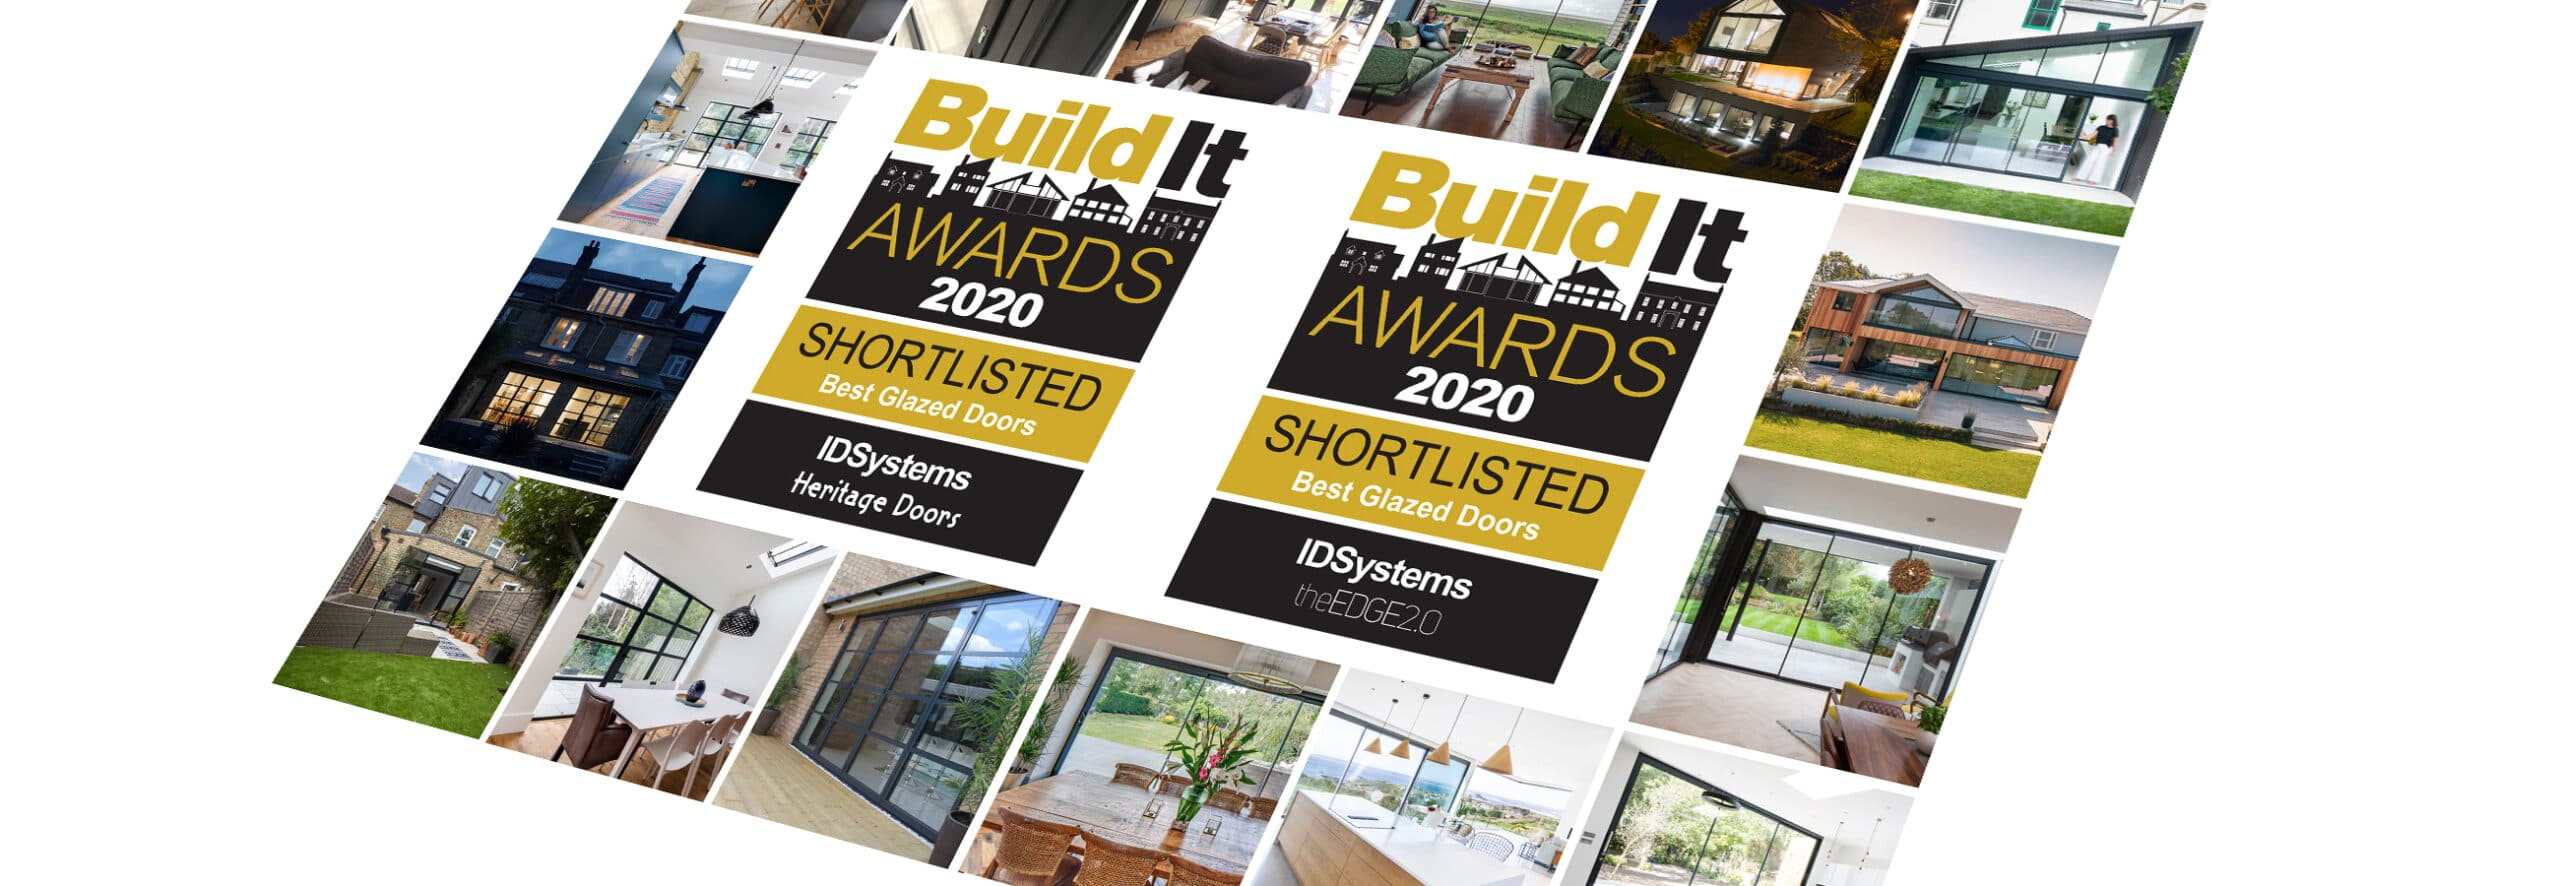 Build It Awards 2020 IDSystems theEDGE2.0 Heritage Doors